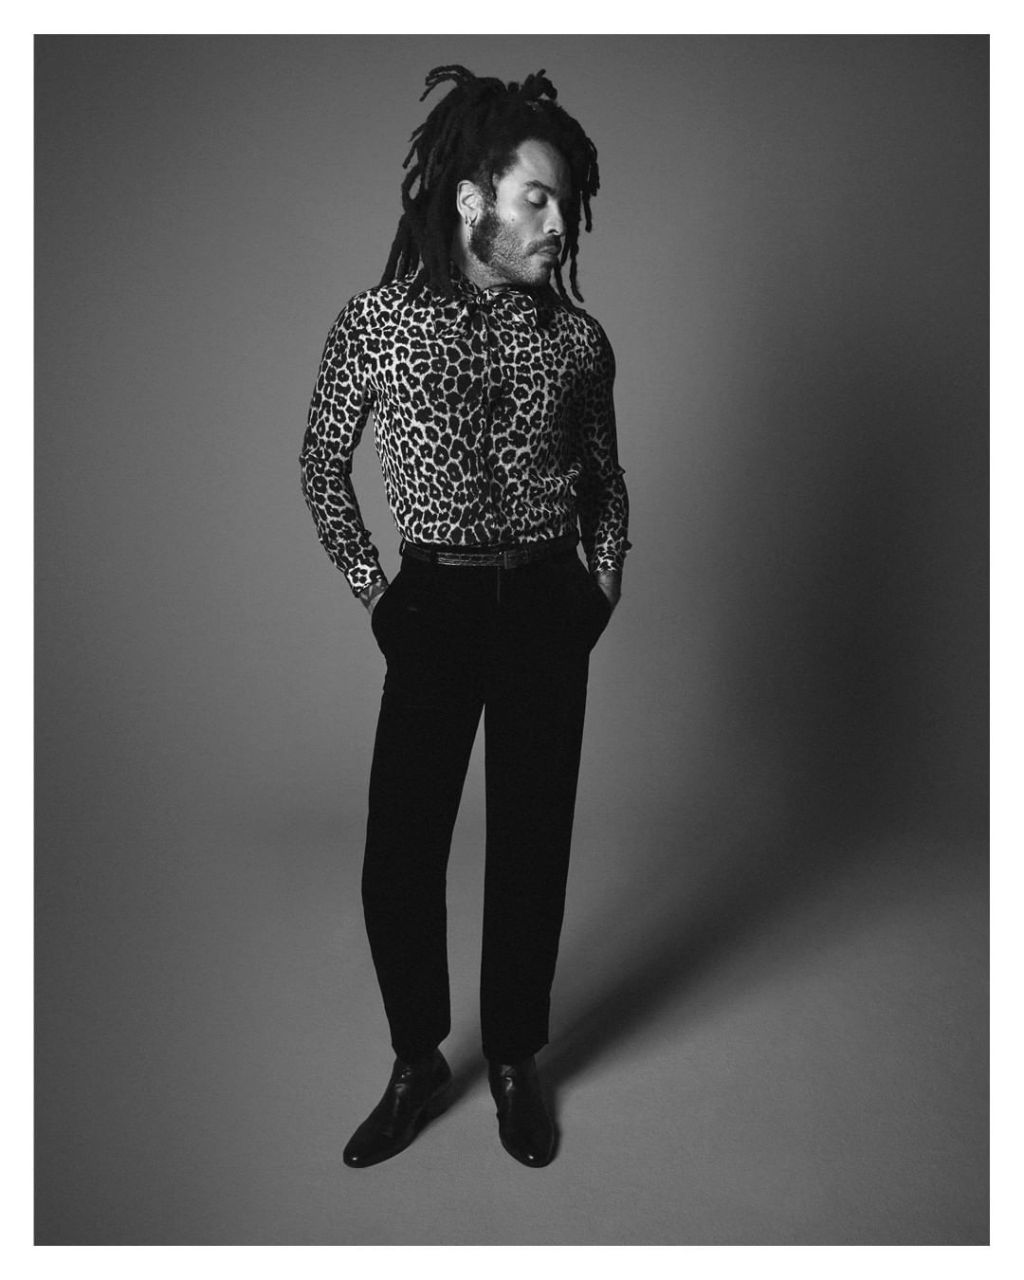 Lenny Kravitz for YSL Fall Winter 20 photographed by David Sims